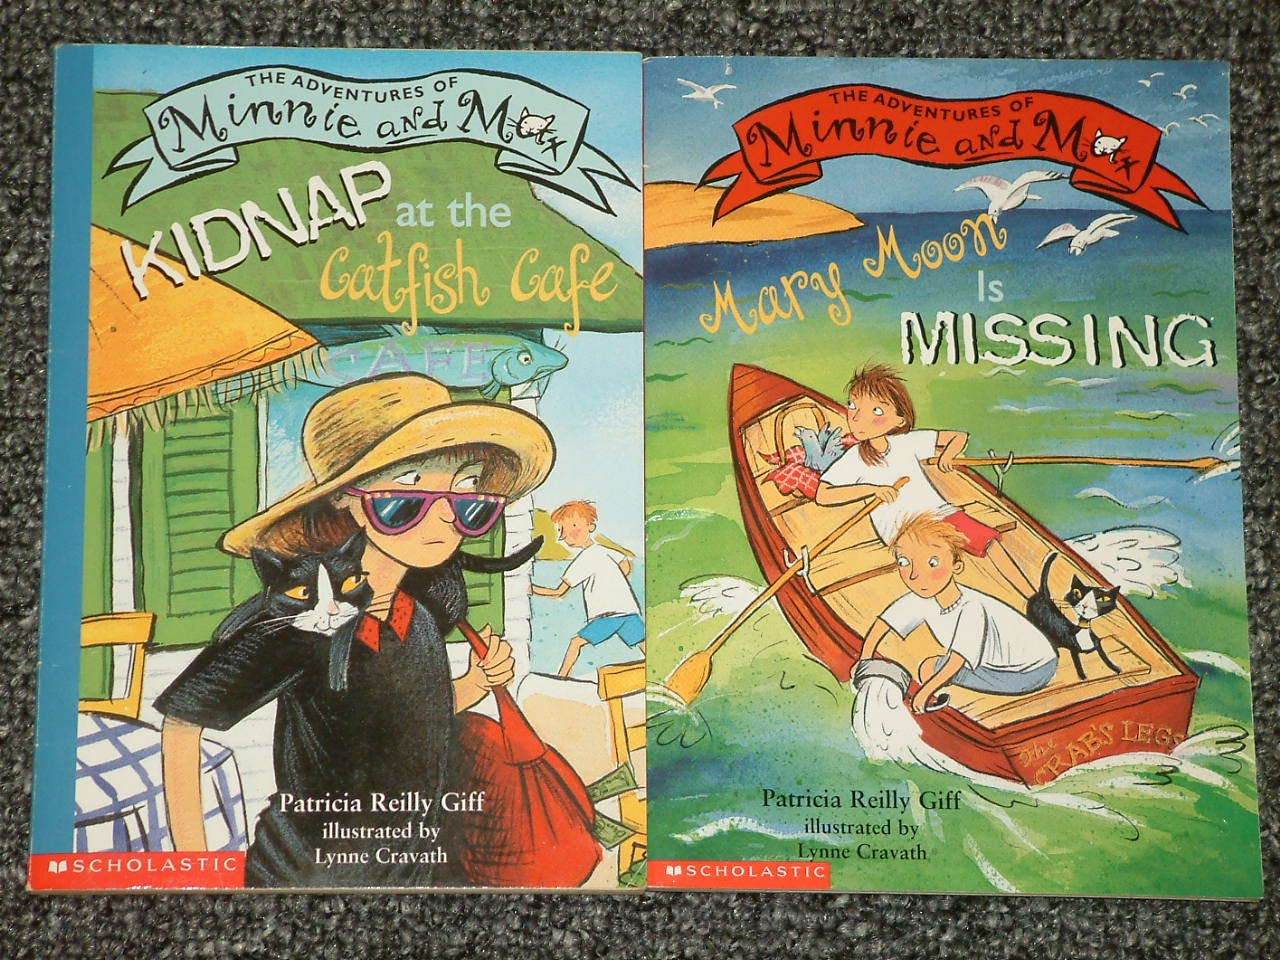 2 The Adventures of Minnie and Max books by Patricia Reilly Giff